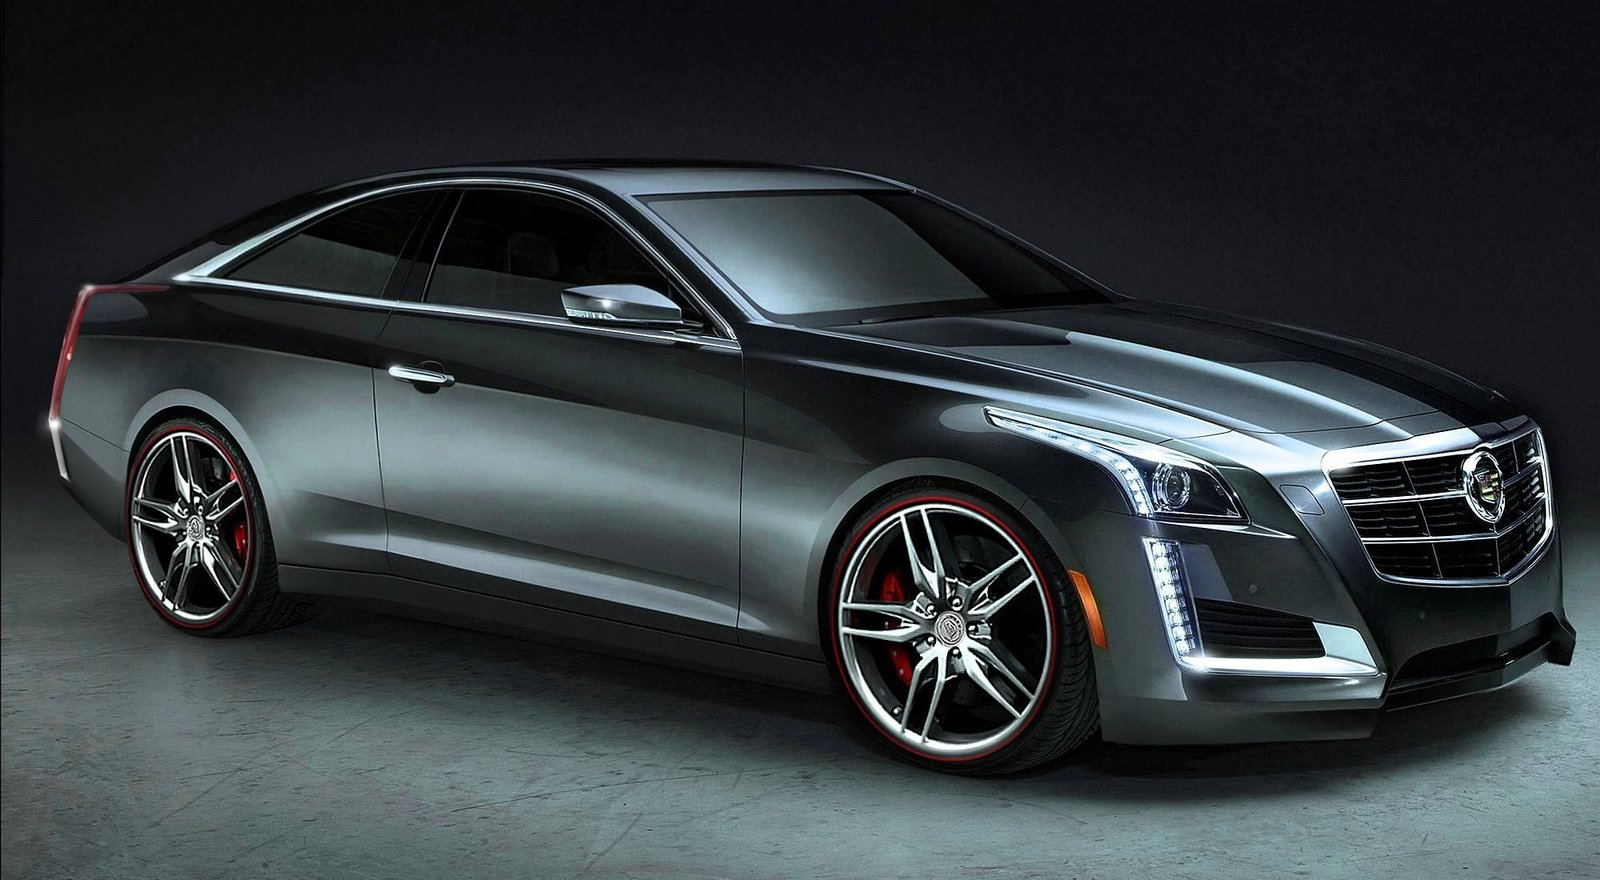 2015 Cadillac Cts Sport Wagon Pictures Information And Specs